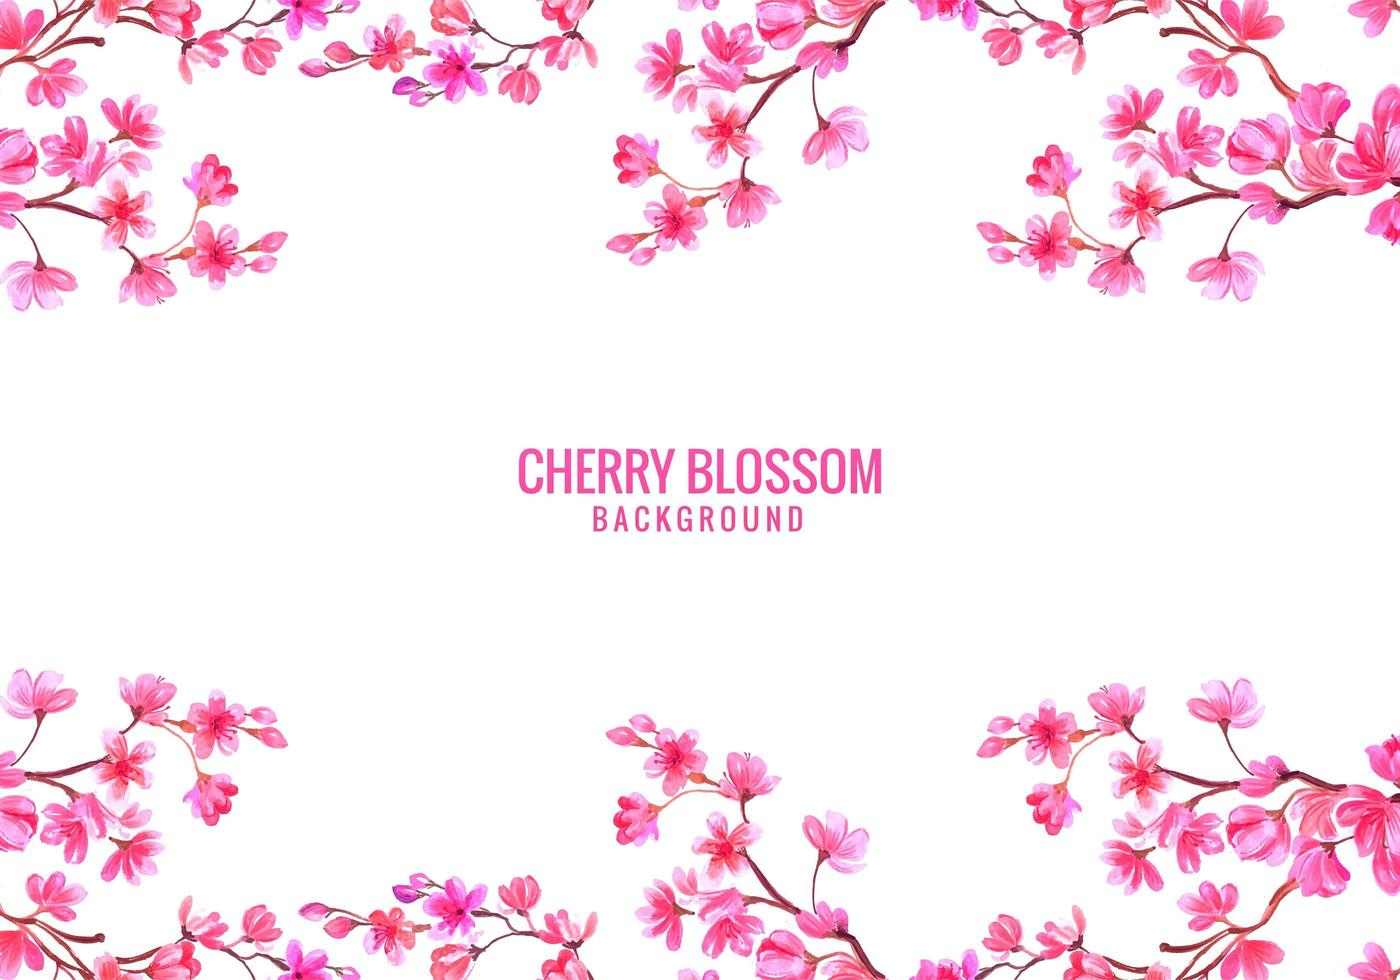 Pink Cherry Blossom Background vector